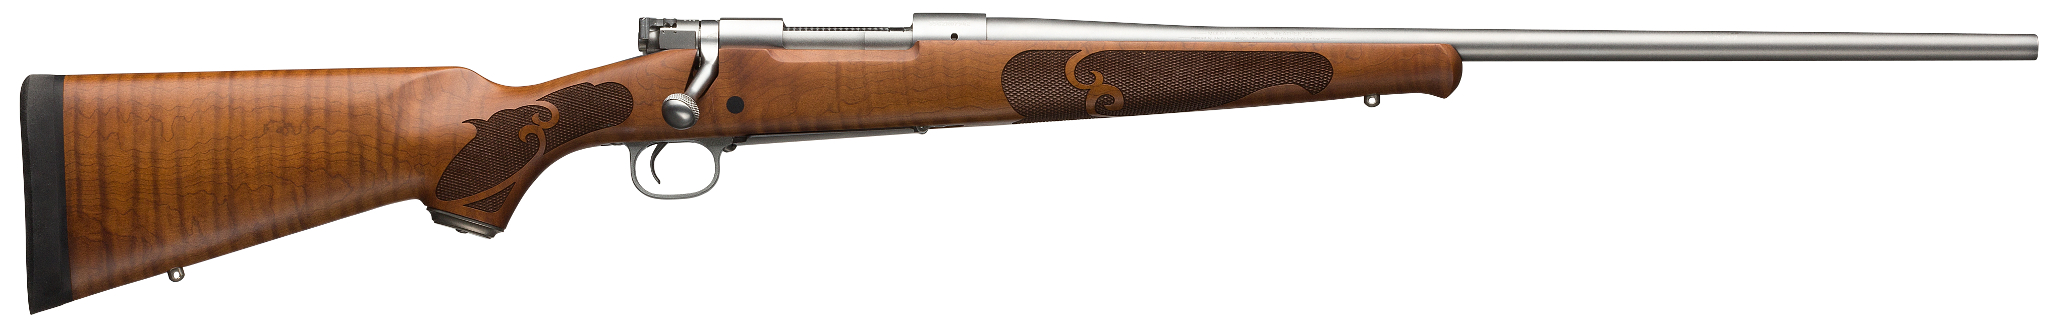 Winchester Model 70 Featherweight Dark Maple Stainless rifle